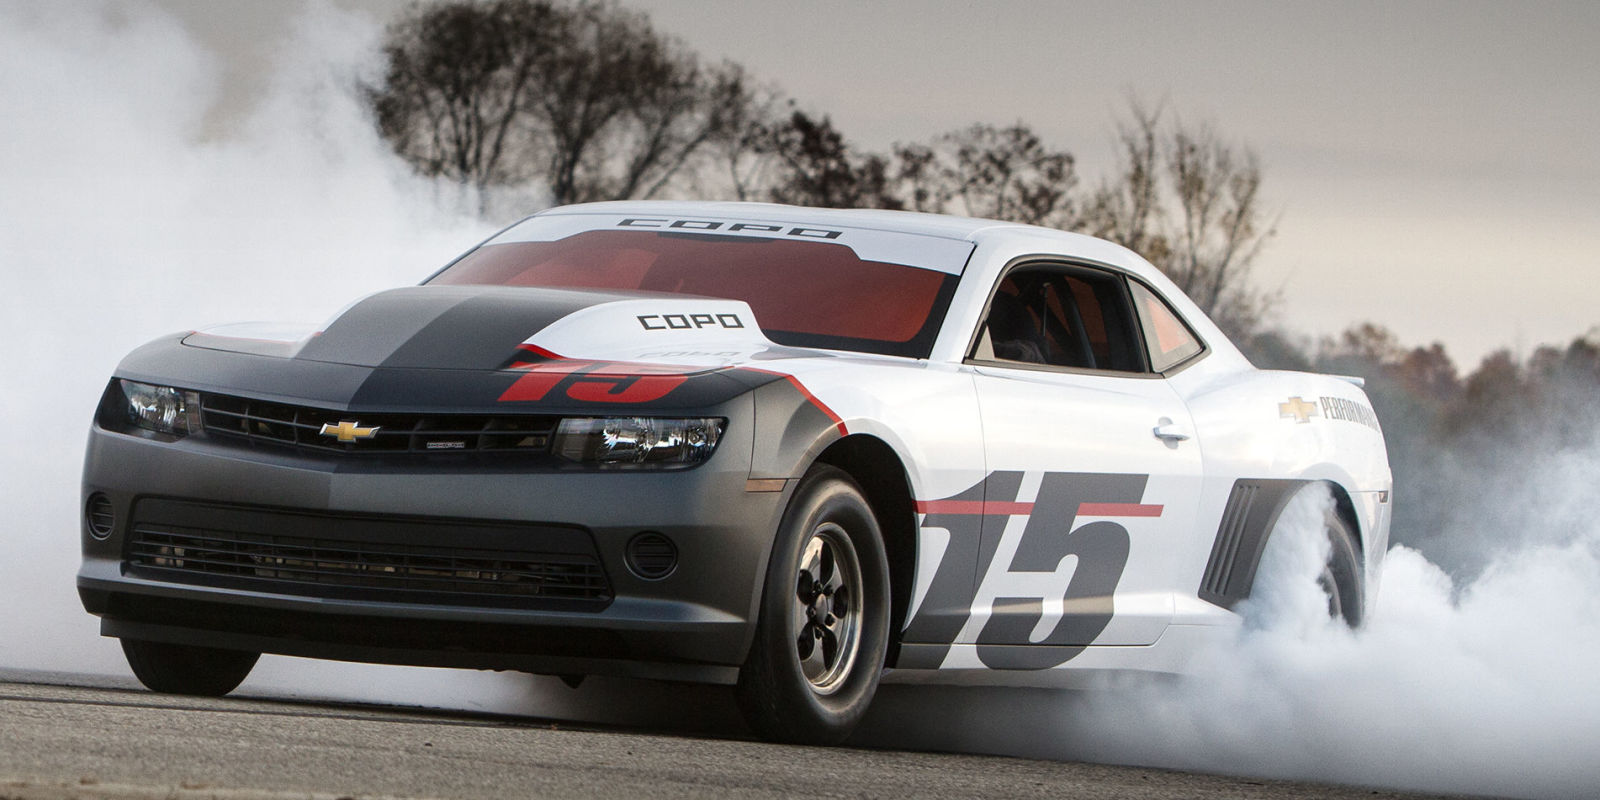 First 2015 Copo Camaro Sale Will Benefit Wounded Vets